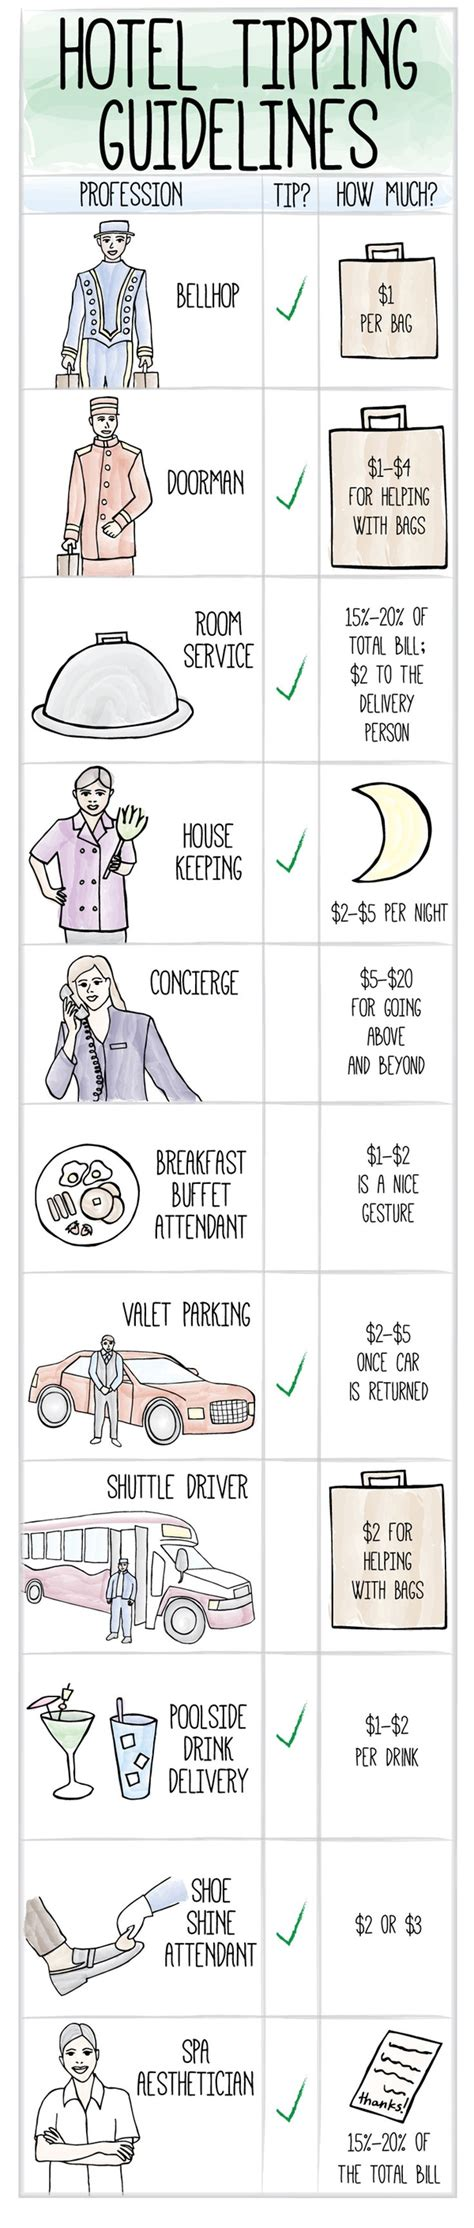 How Much To Tip For Room Service by Everything You Need To About Tipping At Hotels